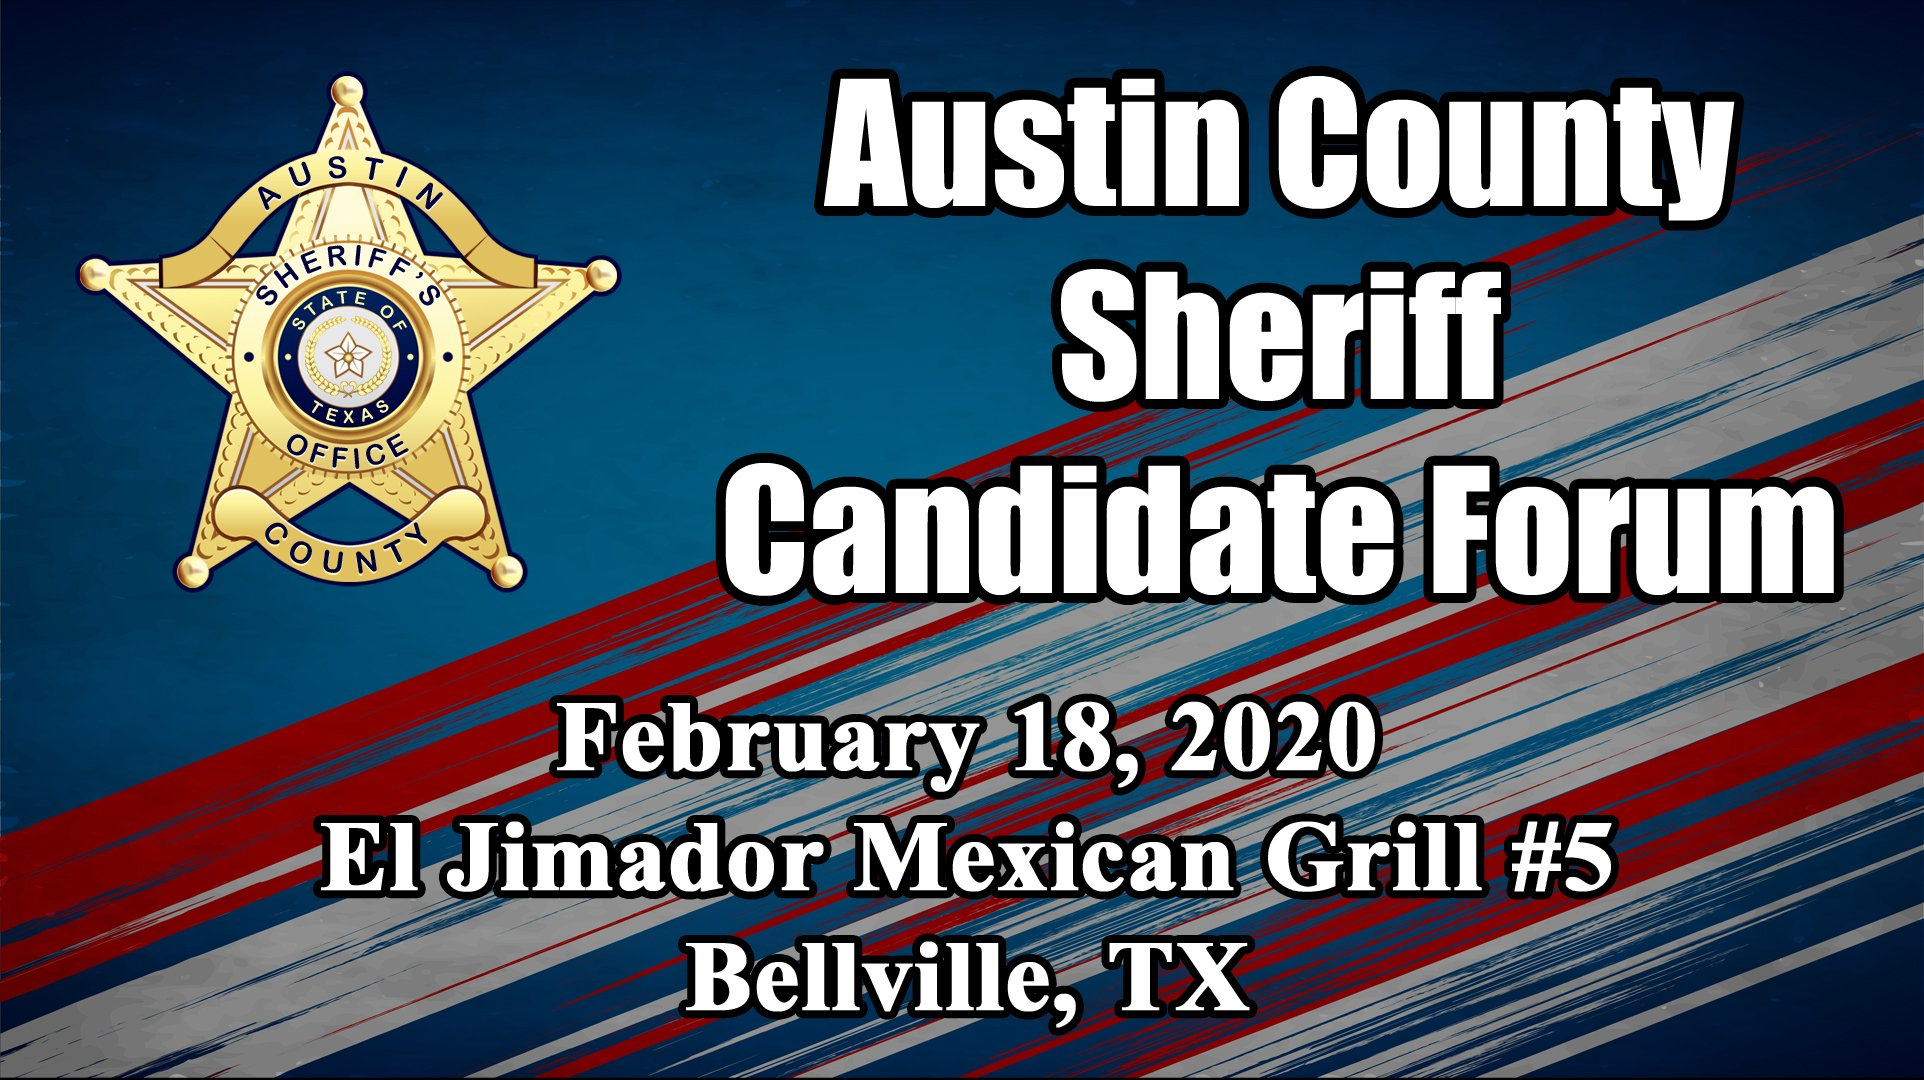 2nd Austin County Sheriff Candidate Forum – February 18, 2020